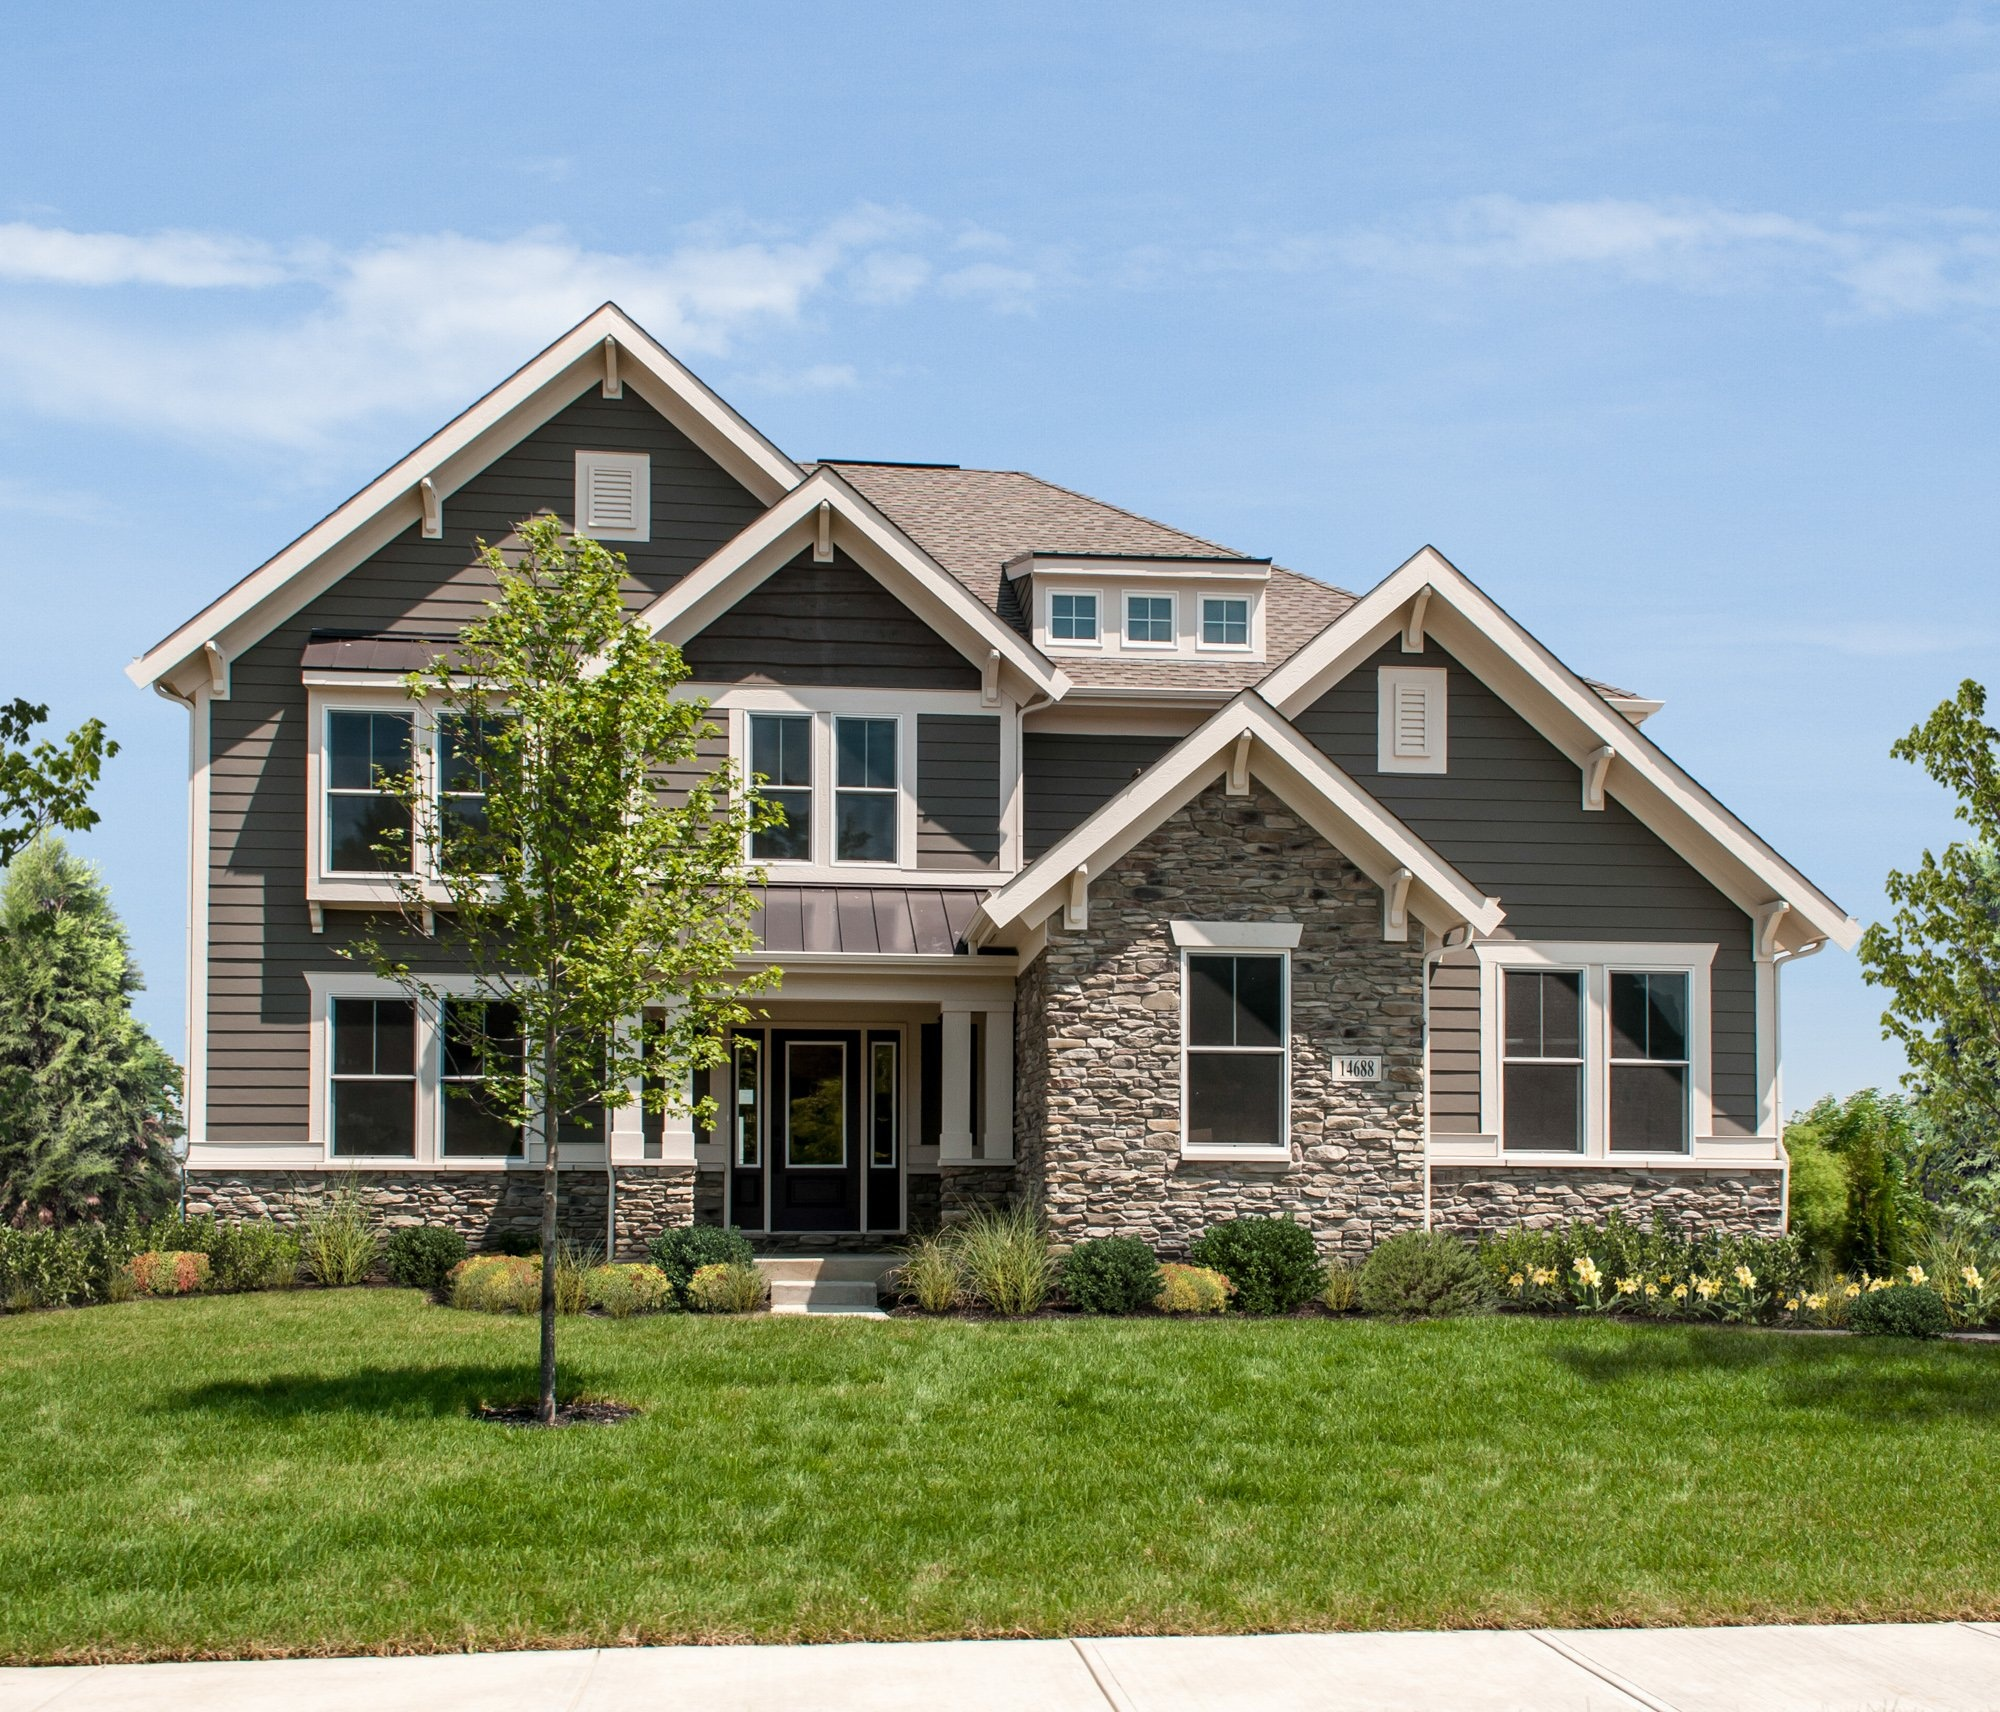 Total Value Of All US Homes Is $27.5 Trillion